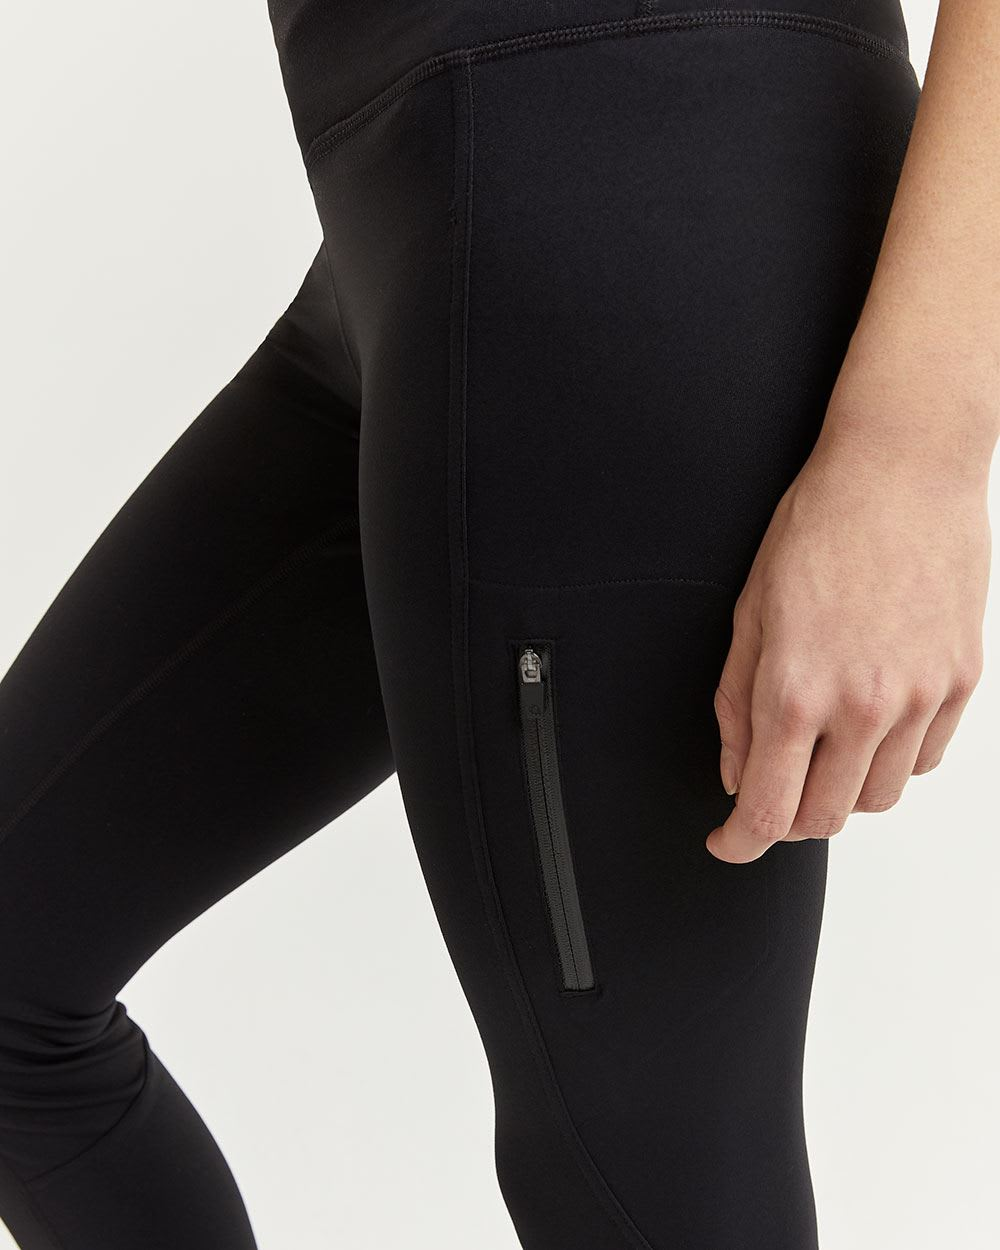 Ankle Black Leggings with Pocket Hyba